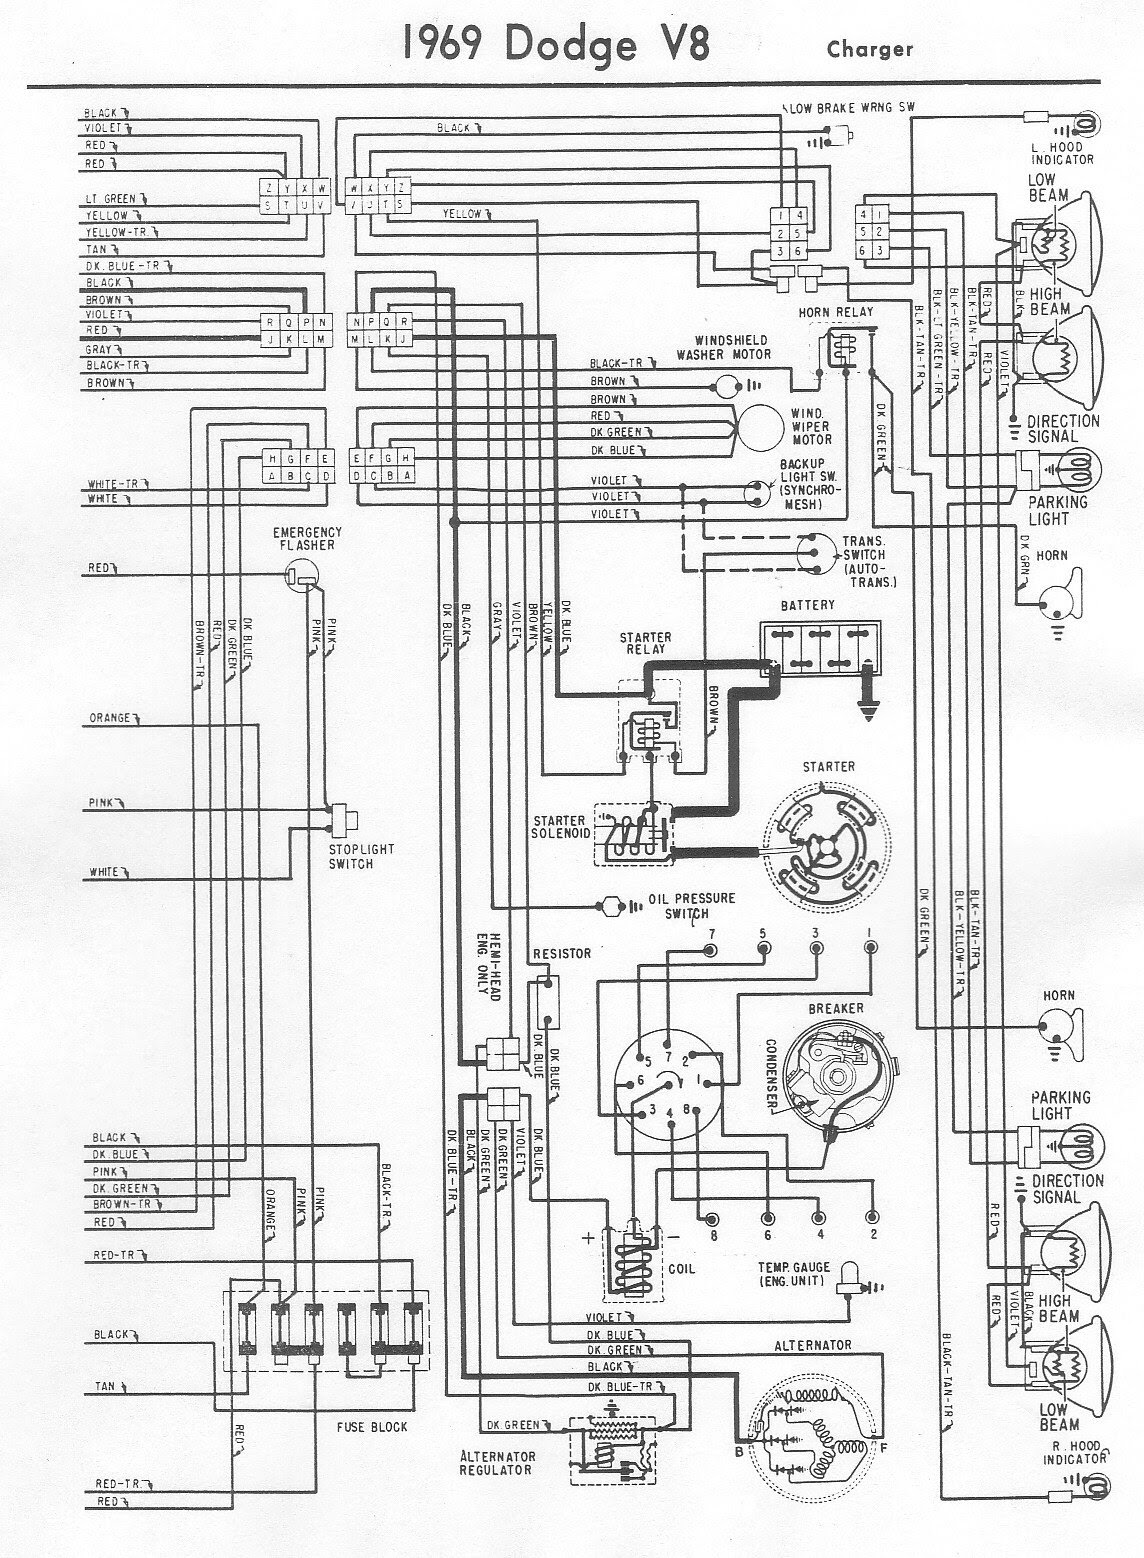 68 Pontiac Instrument Cluster Wiring Wiring Diagram Workstation Workstation Pasticceriagele It